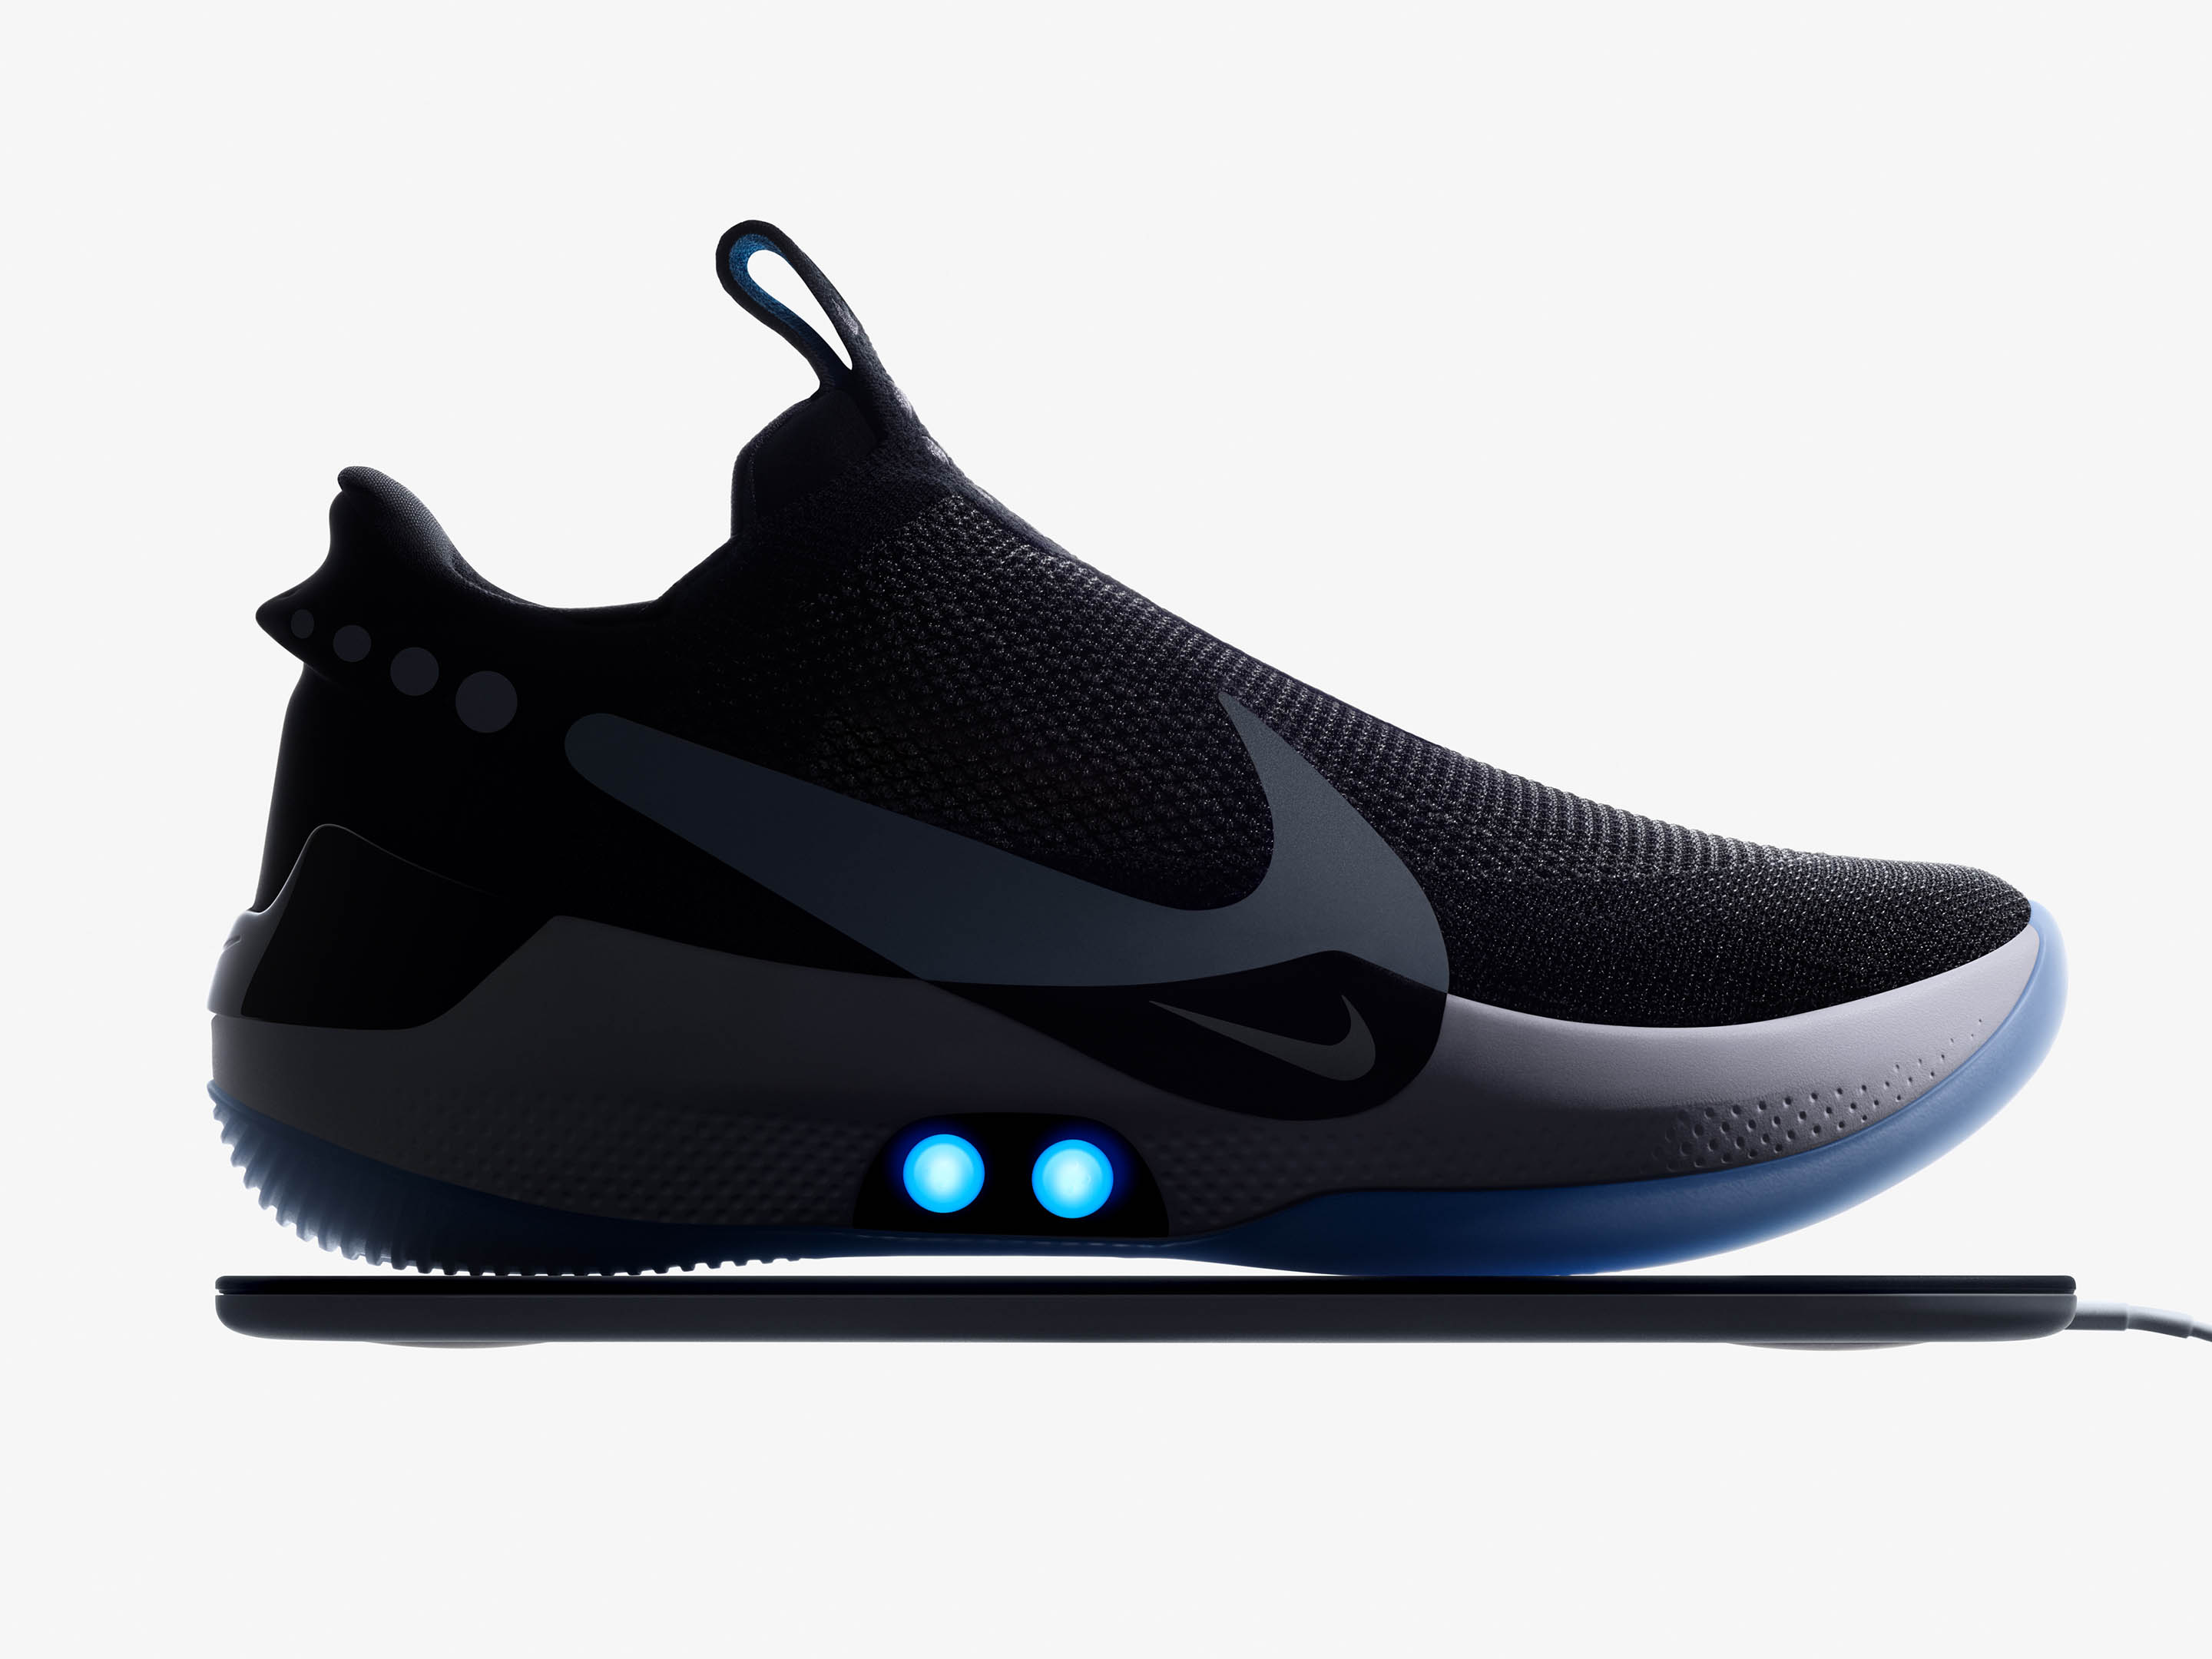 Nike Adapt BB on Qi charging mat